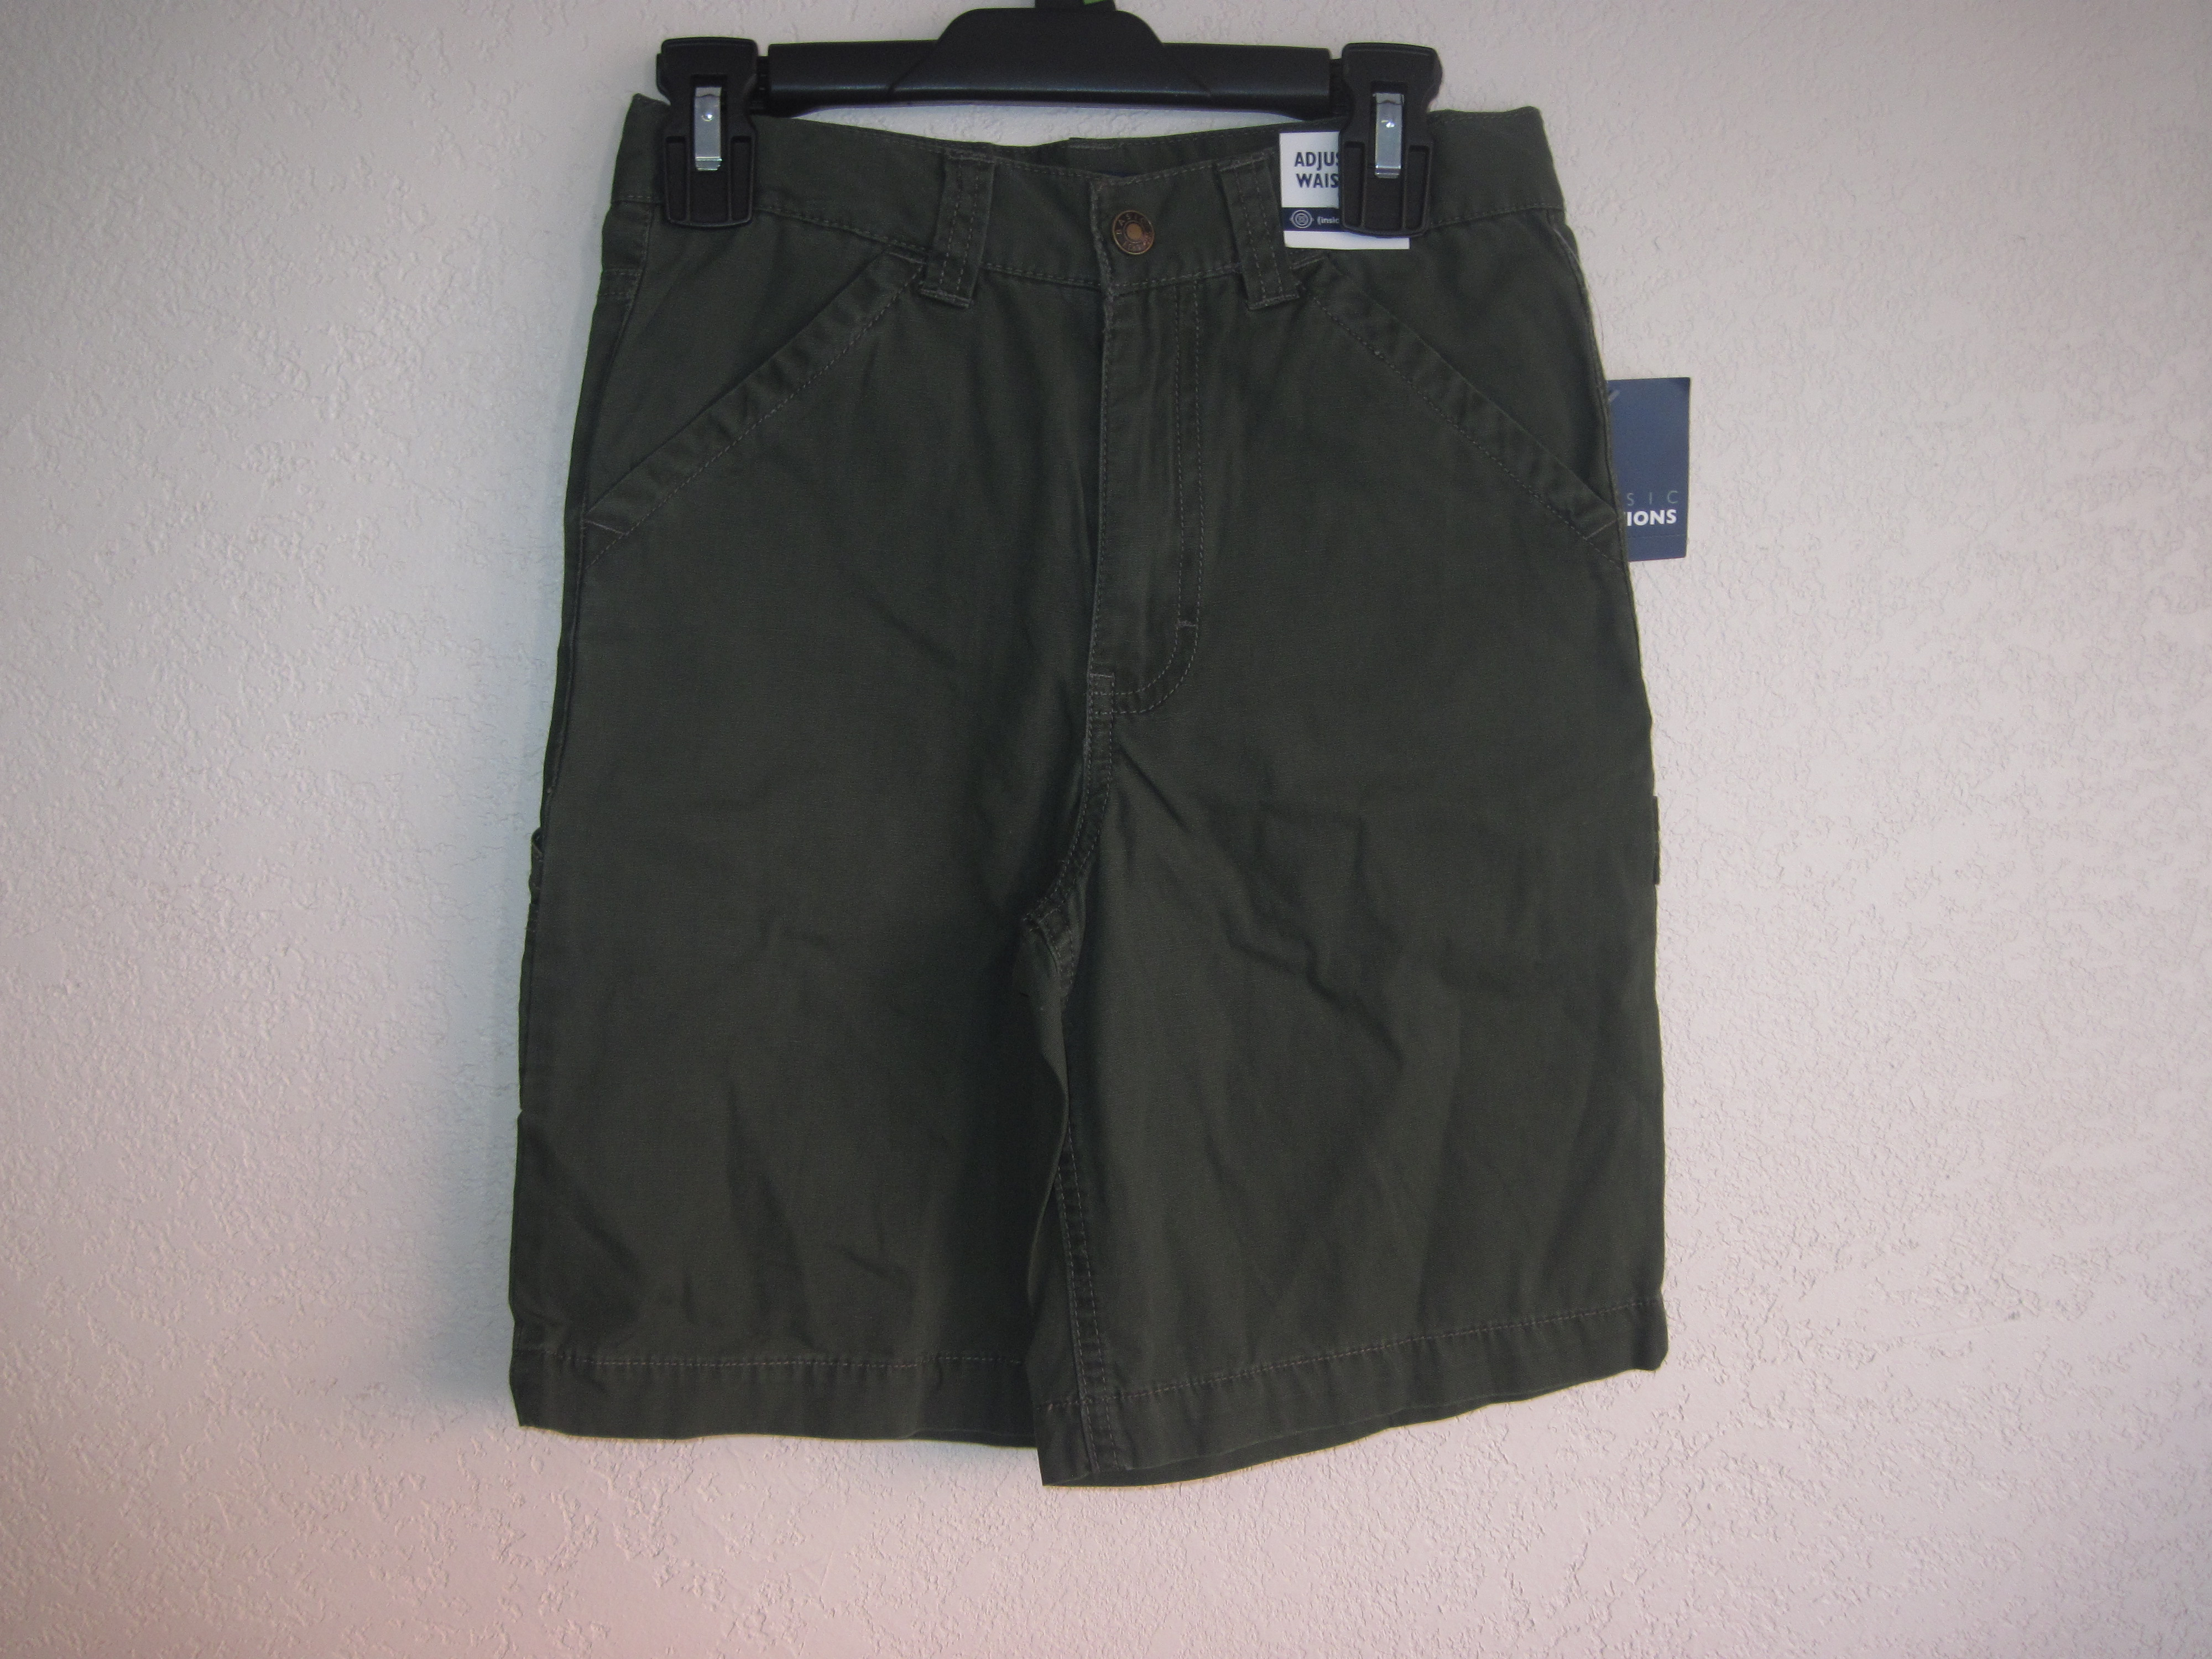 Basic Editions Sz 7 Carpenter Shorts (hunter green)